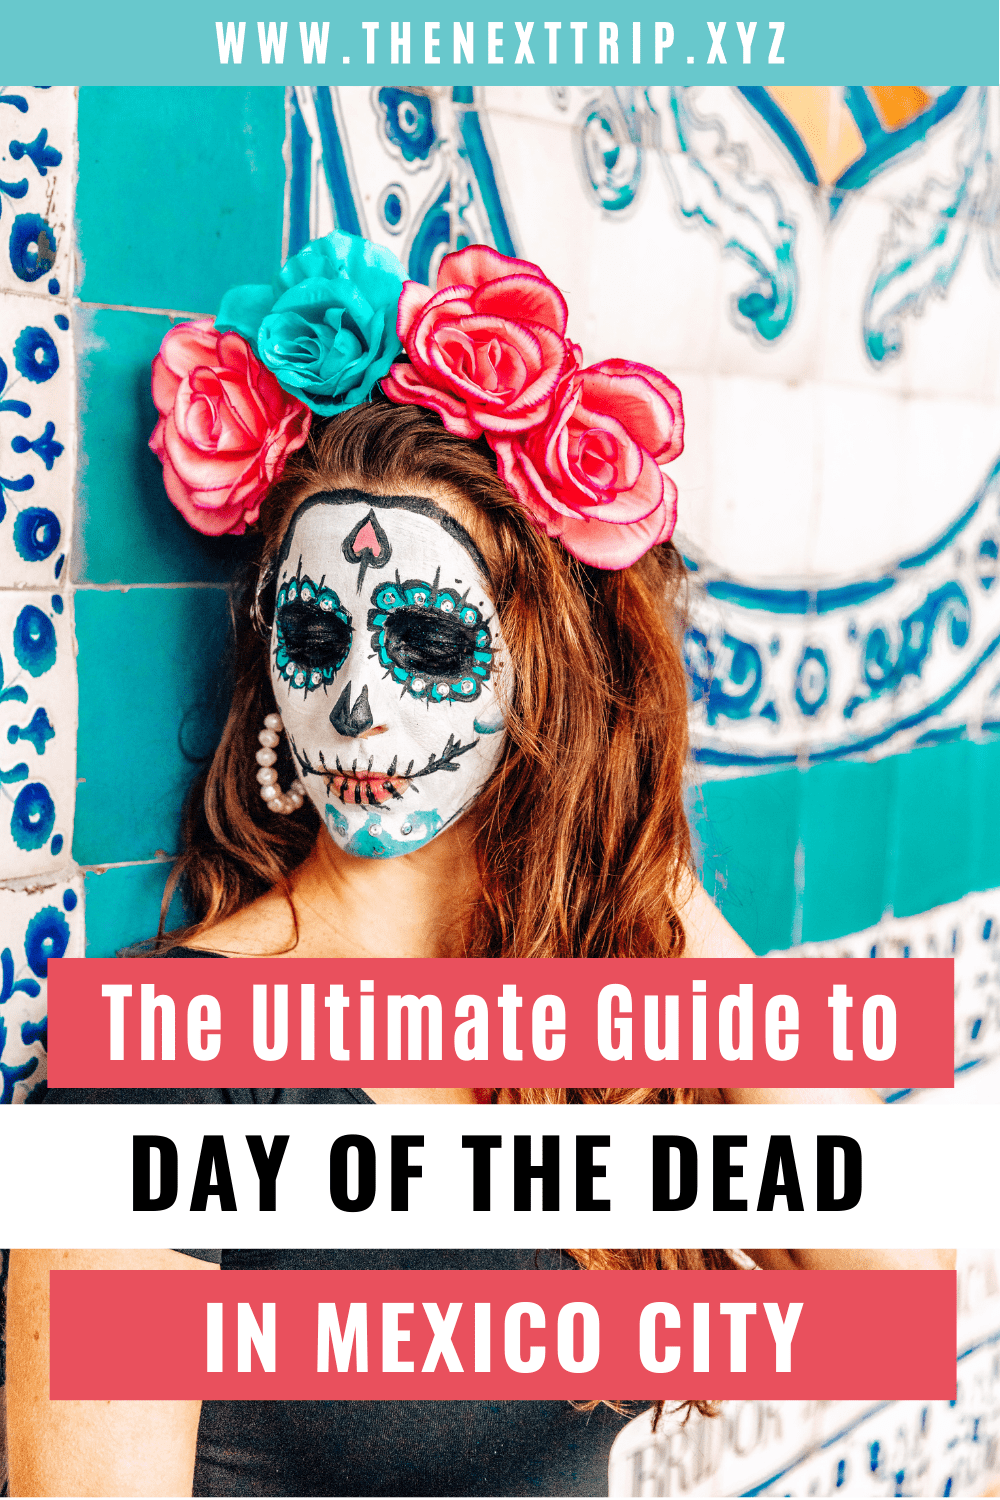 The ultimate guide to celebrating the Day of the Dead Mexico 2020 and traveling to Mexico City! All you need to know about the Day of the Dead parade, the history and culture behind the holiday, and where to find the best tacos in Mexico City! | Mexico City Guide | Mexico City Travel | Day of the Dead Guide | Dia de los Muertos Mexico City | Dia de los Muertos Altar | Day of the Dead Face Paint | Day of the Dead Costumes | Day of the Dead Ofrendas